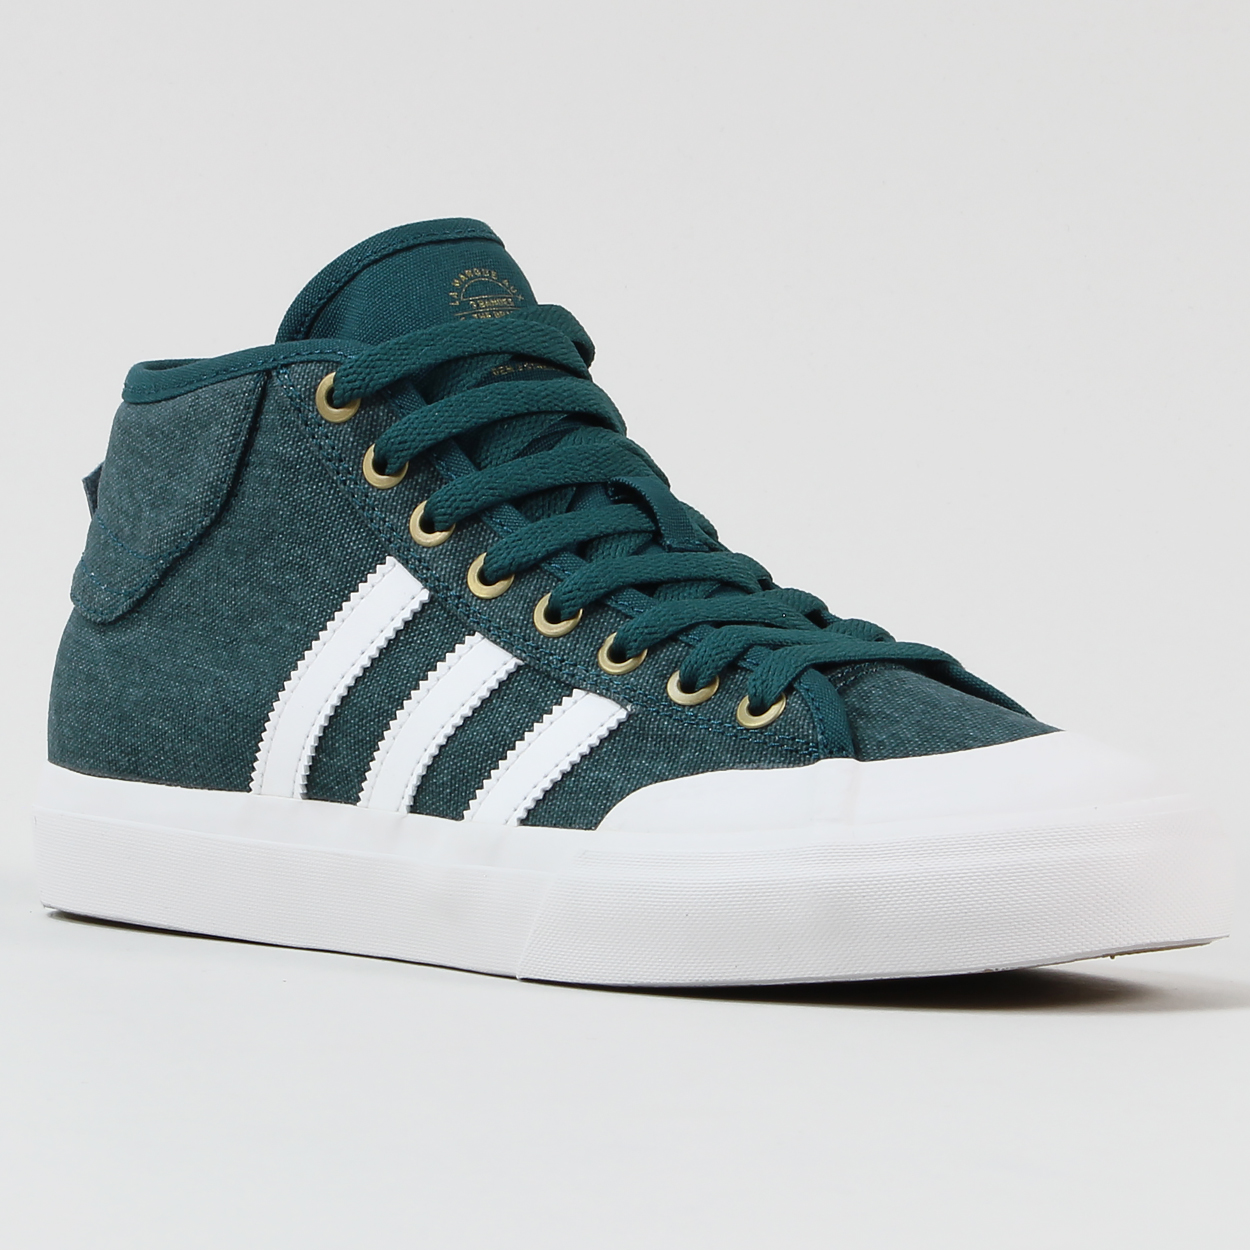 watch 311f5 f934f Adidas Skateboarding Matchcourt mid top trainers with vulcanized sole unit,  rubberized toe, iconic three stripes, canvas body, adidas pull tab at the  back.